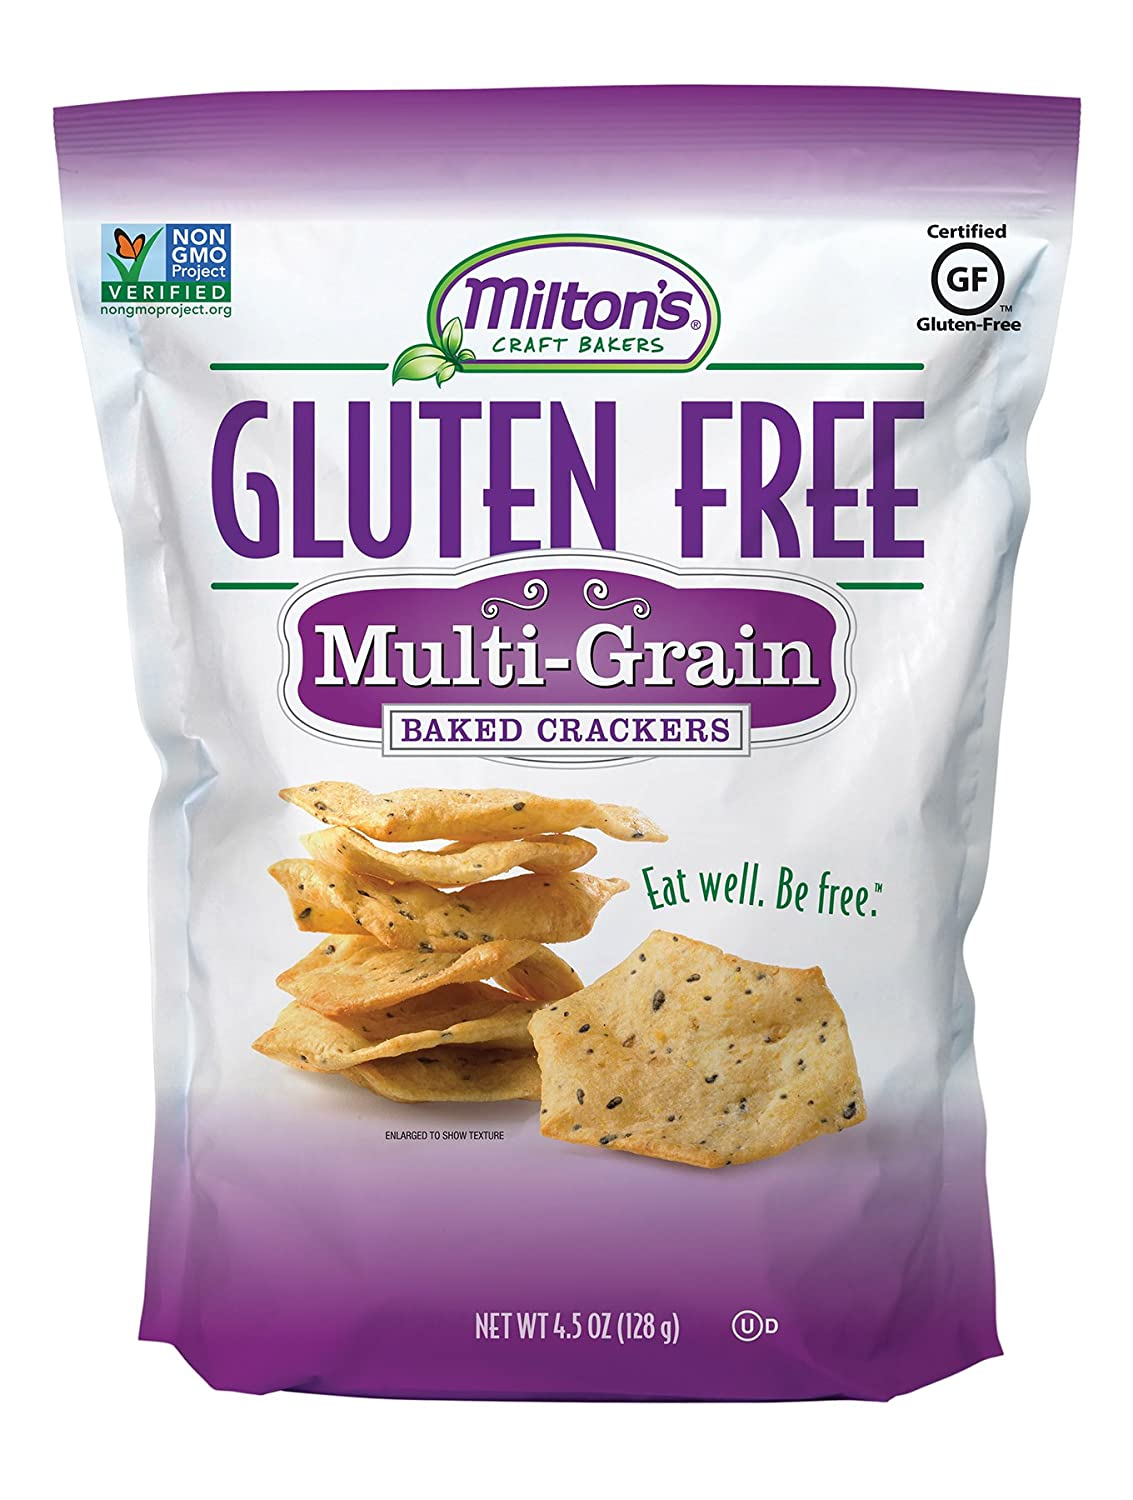 Topics on TV Milton's Gluten Free Baked OFFicial mail order Crackers Multi-Grain Ounce 4.5 Bag